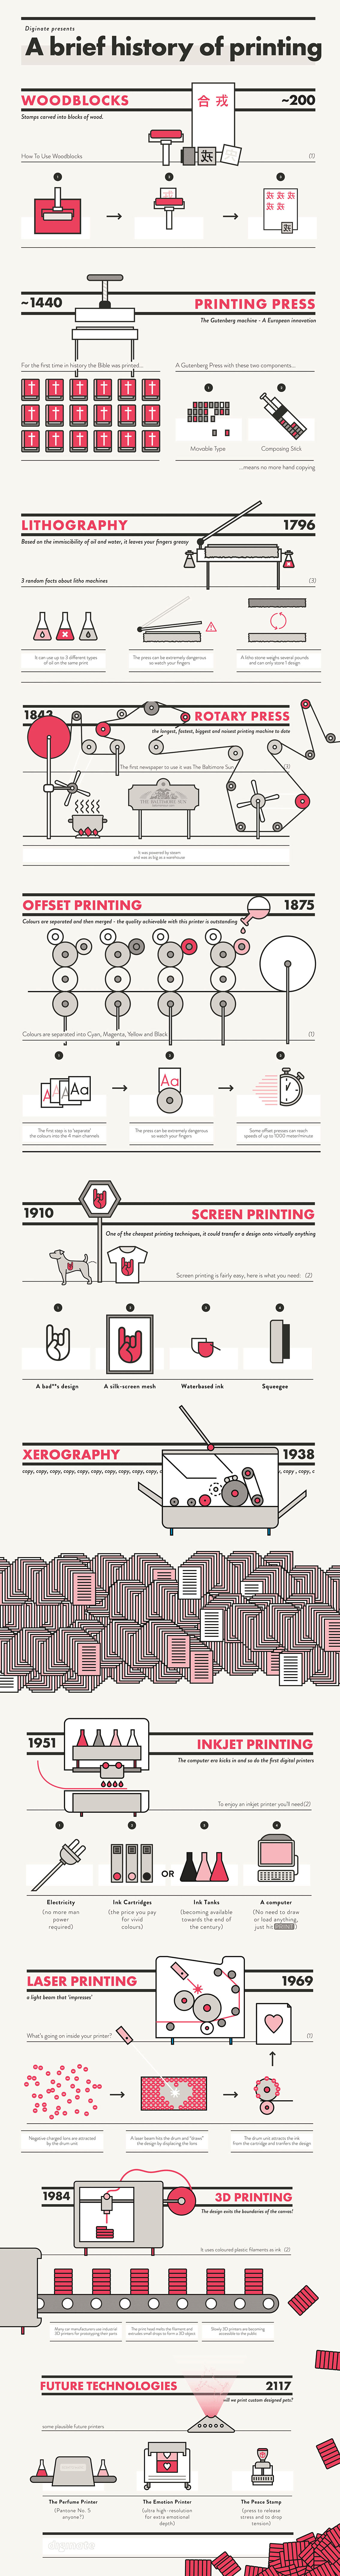 The Evolution of Printing Technology Infographic